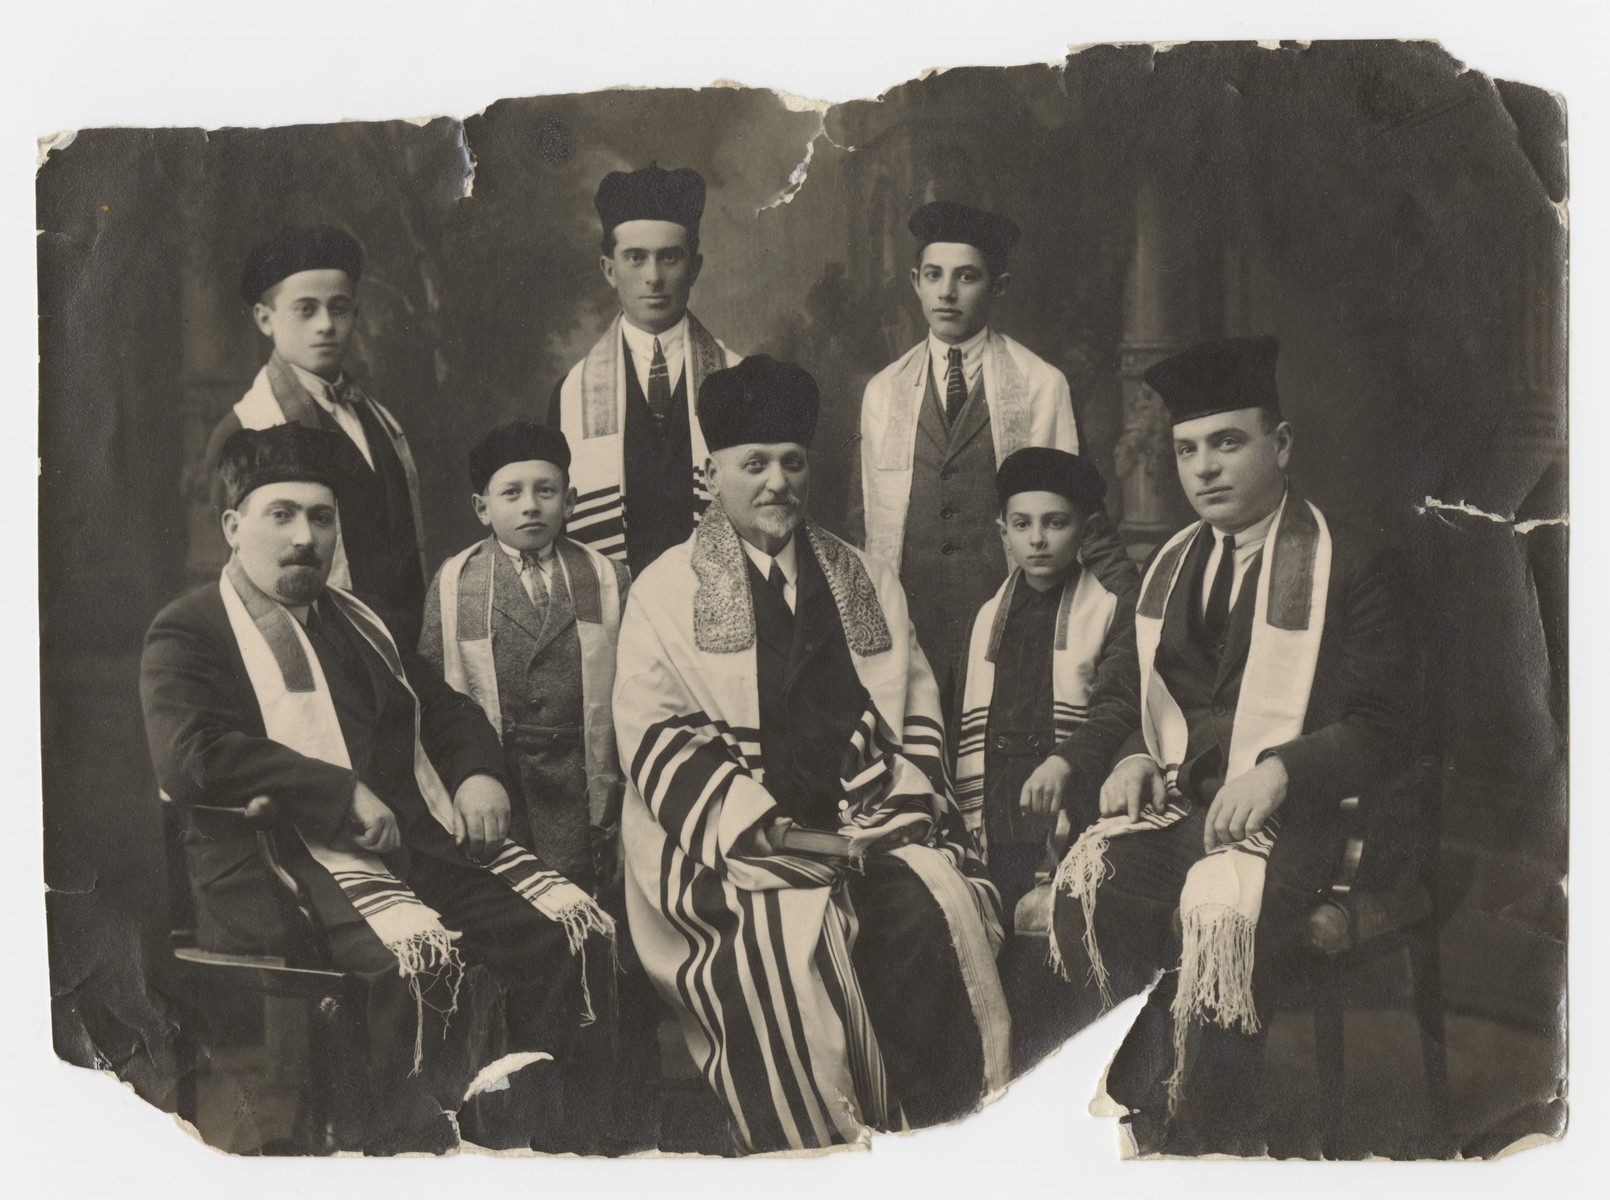 Group portrait of religious men clad in prayer shawls in Liptovsky Mikulas.  Rubin Schwalb is seated in the center, and his two young sons.are on either end.  Alexander is on the left and Armin is on the right.